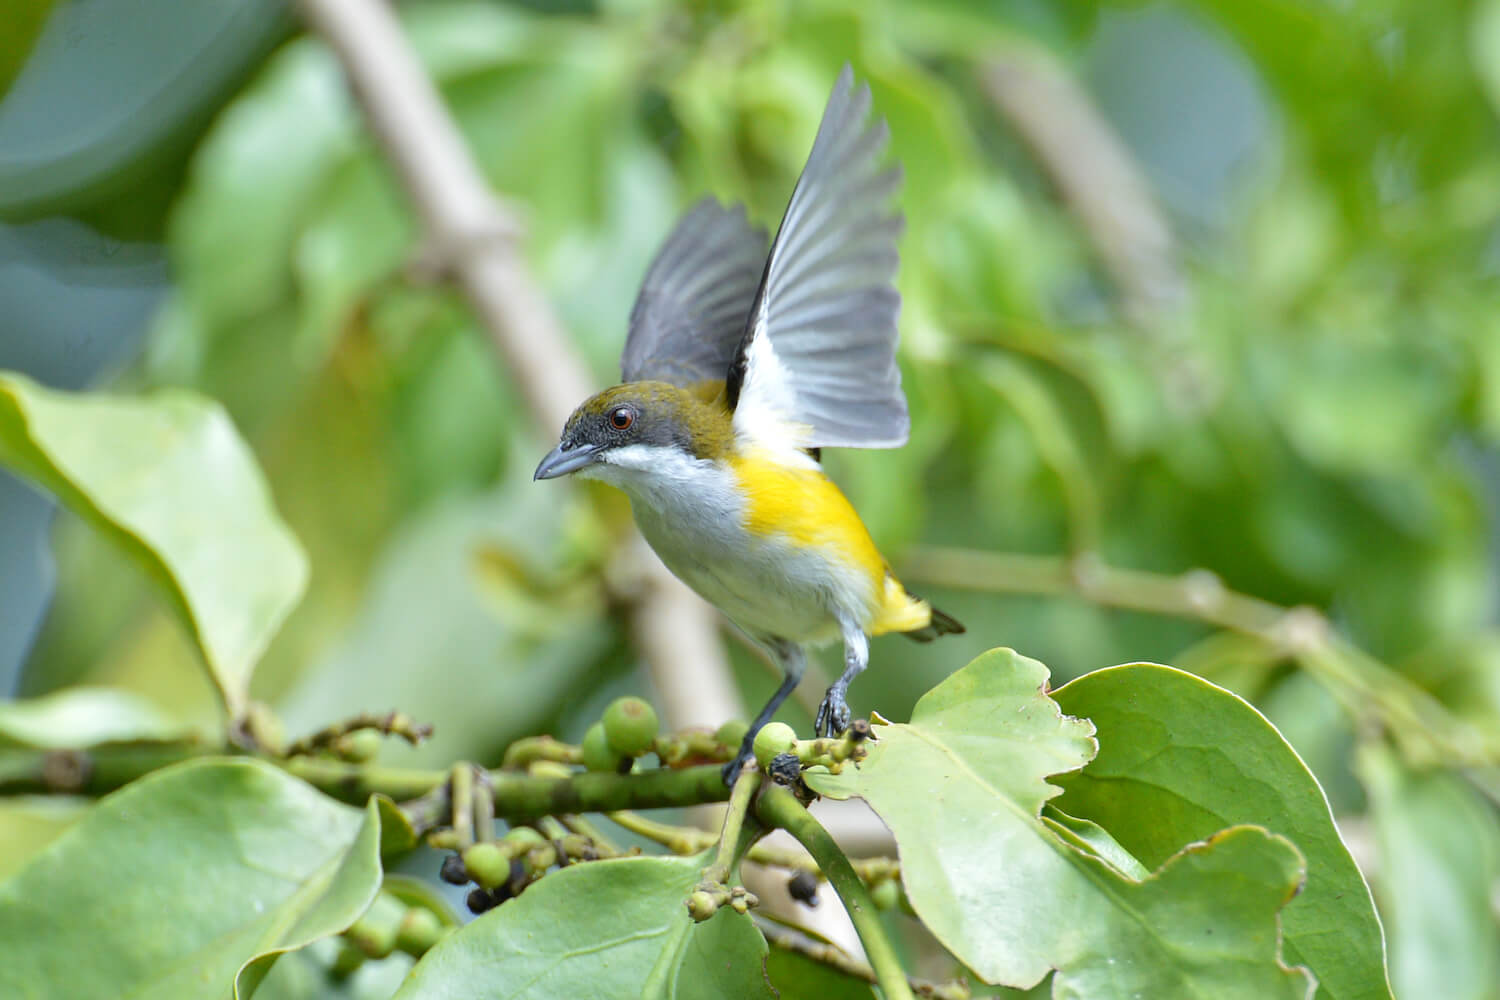 Close-up of small yellow, white and gray bird with wings up, either about to take flight or just landing.